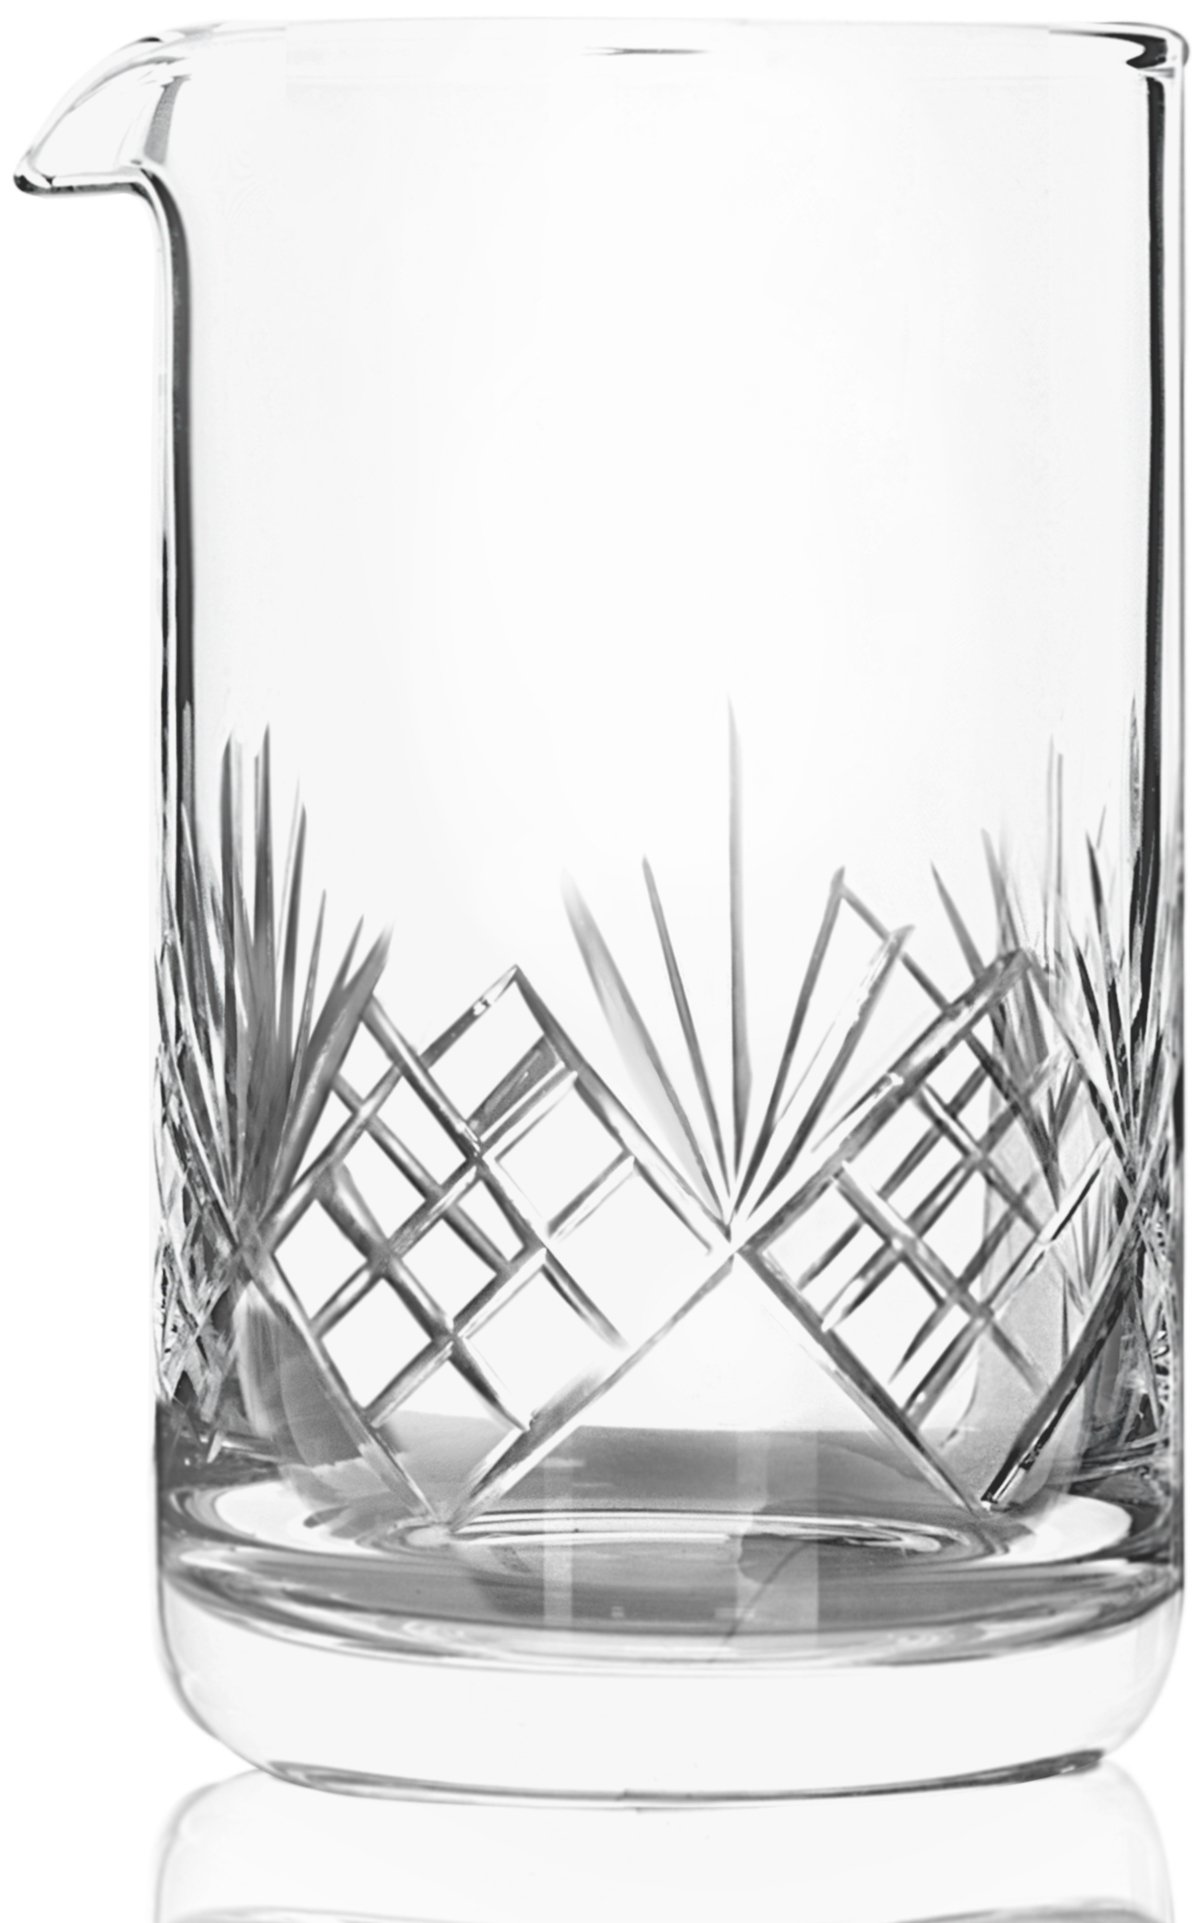 Crystal Cocktail Mixing Glass - Thick Weighted Bottom - 18oz (550ml) - Premium Seamless Design - Professional Quality - Great Gift Idea